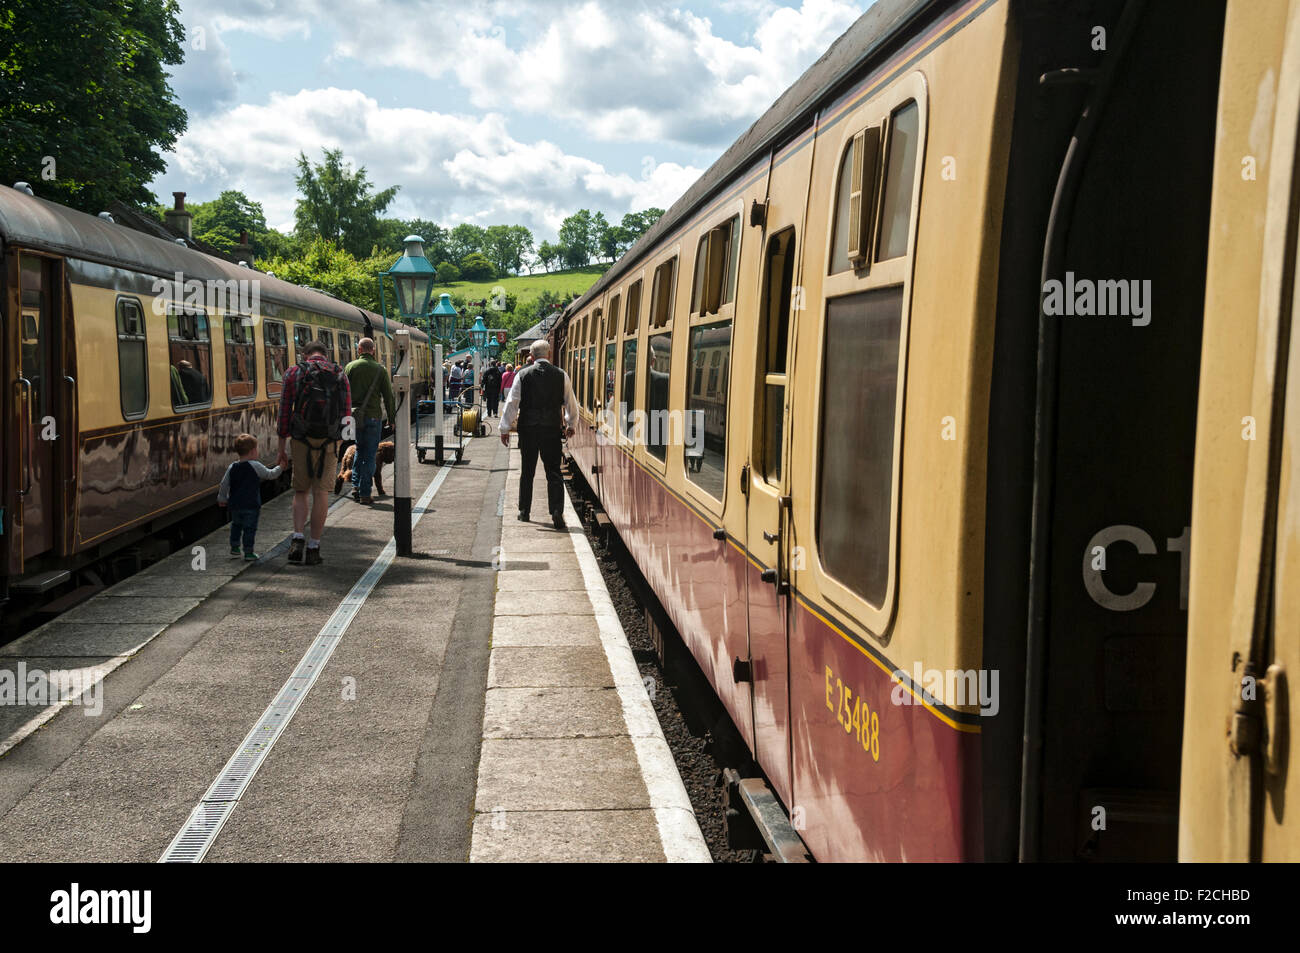 Vintage passenger carriages at Grosmont Station on the North Yorkshire Moors Railway, Yorkshire, England, UK - Stock Image